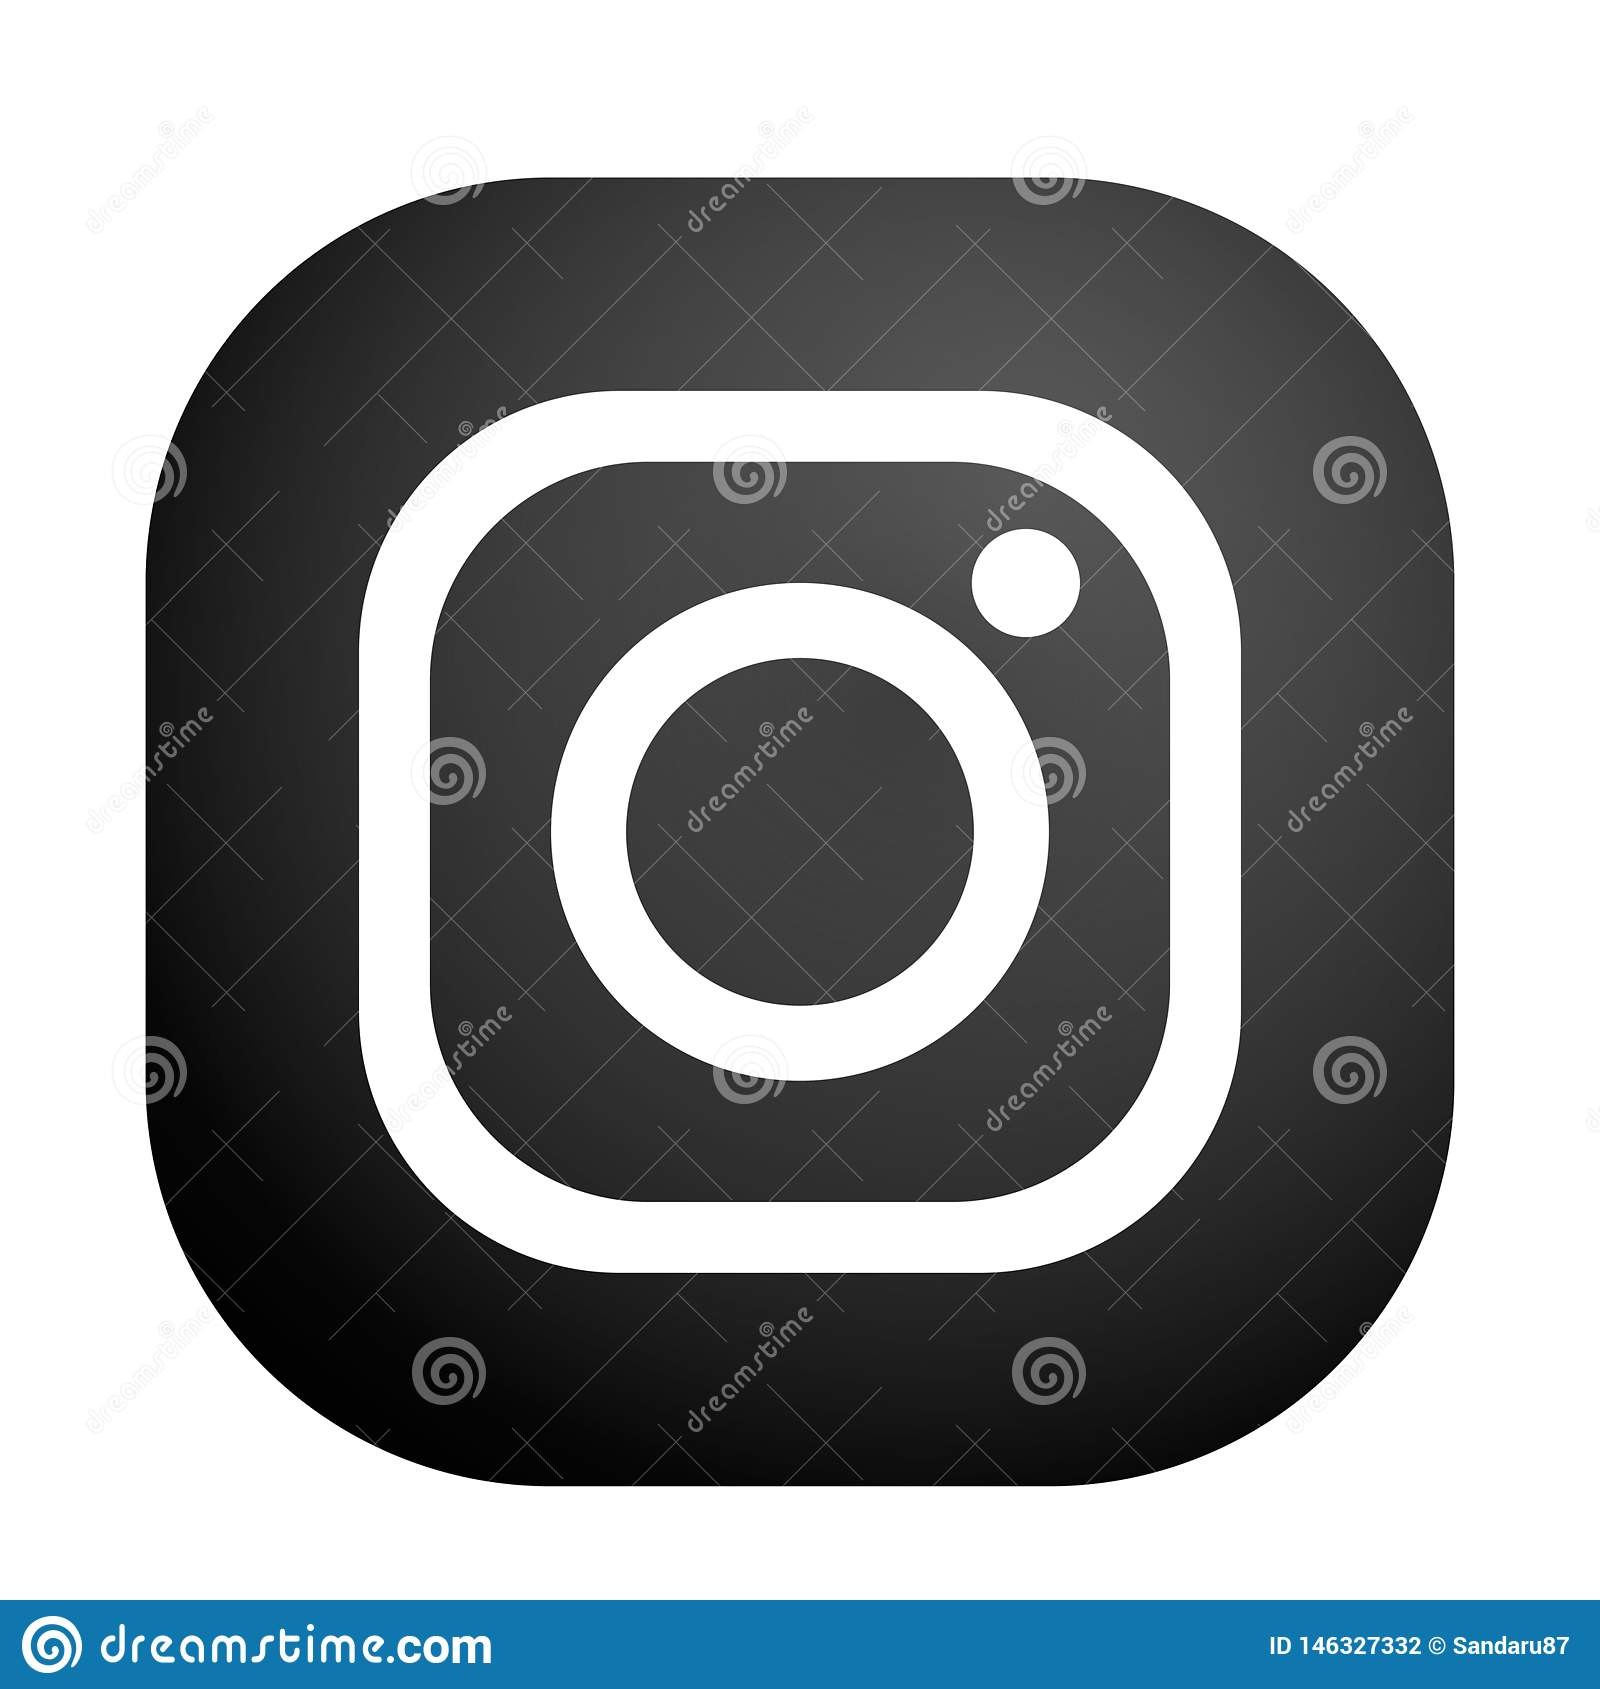 New instagram camera logo icon in black vector with modern